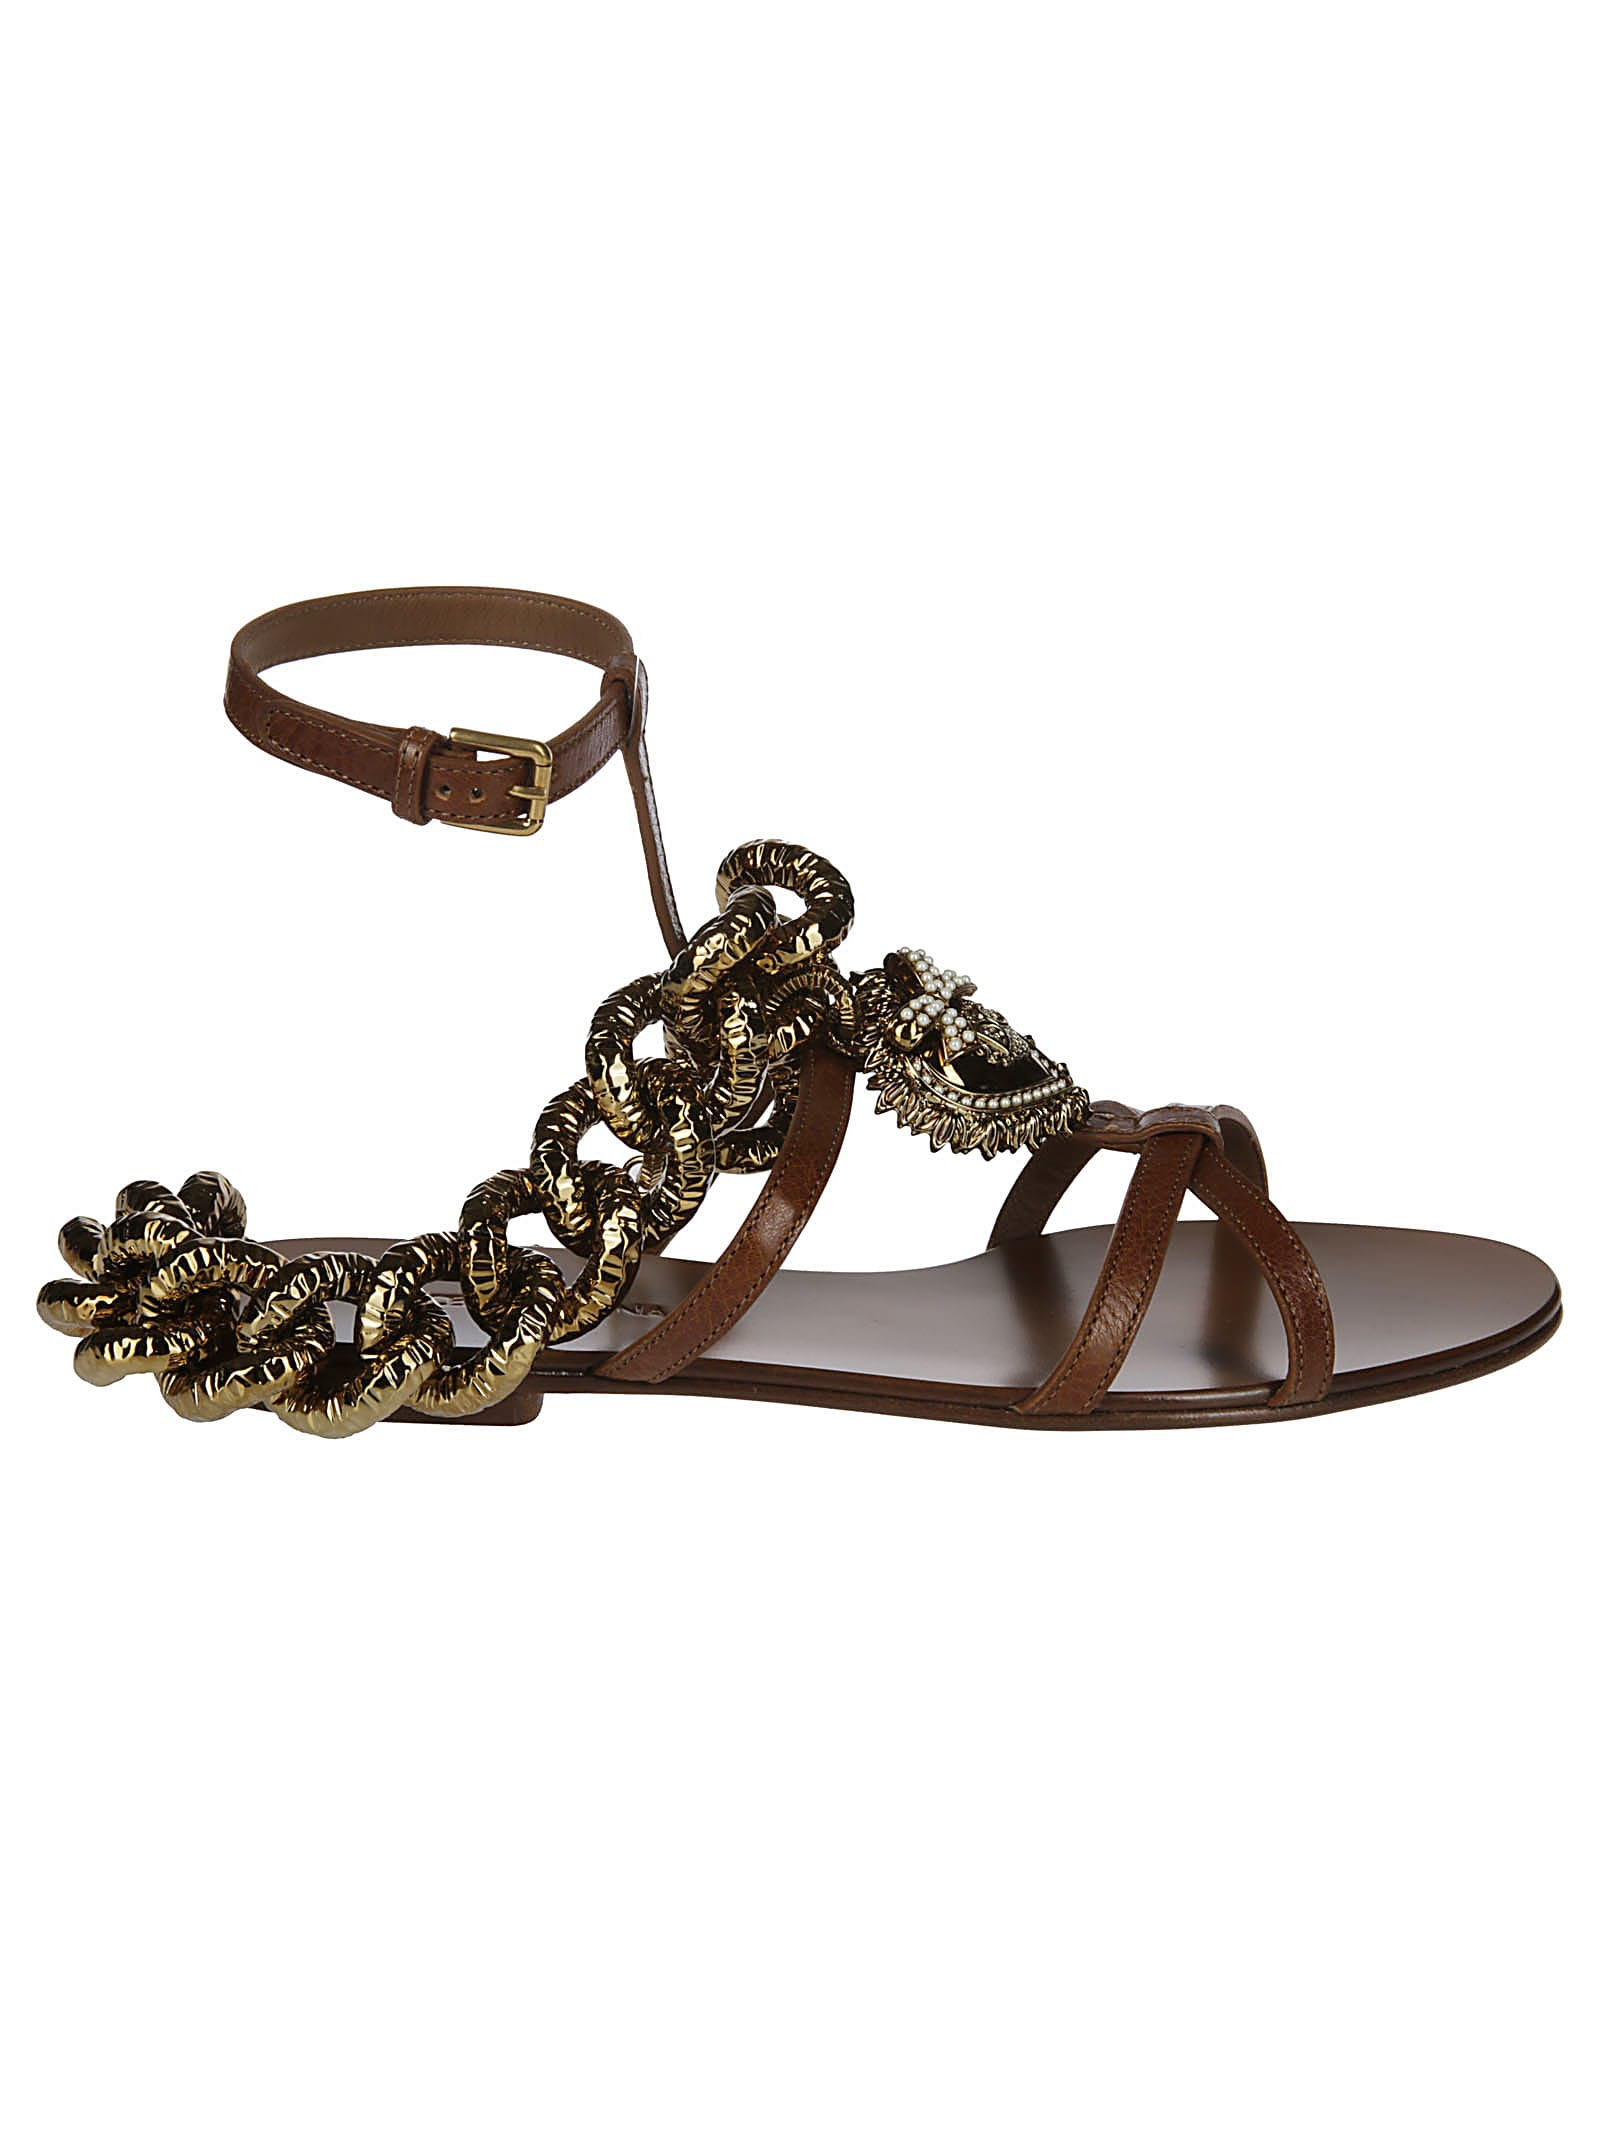 Dolce & Gabbana Brown Leather Devotion Sandals